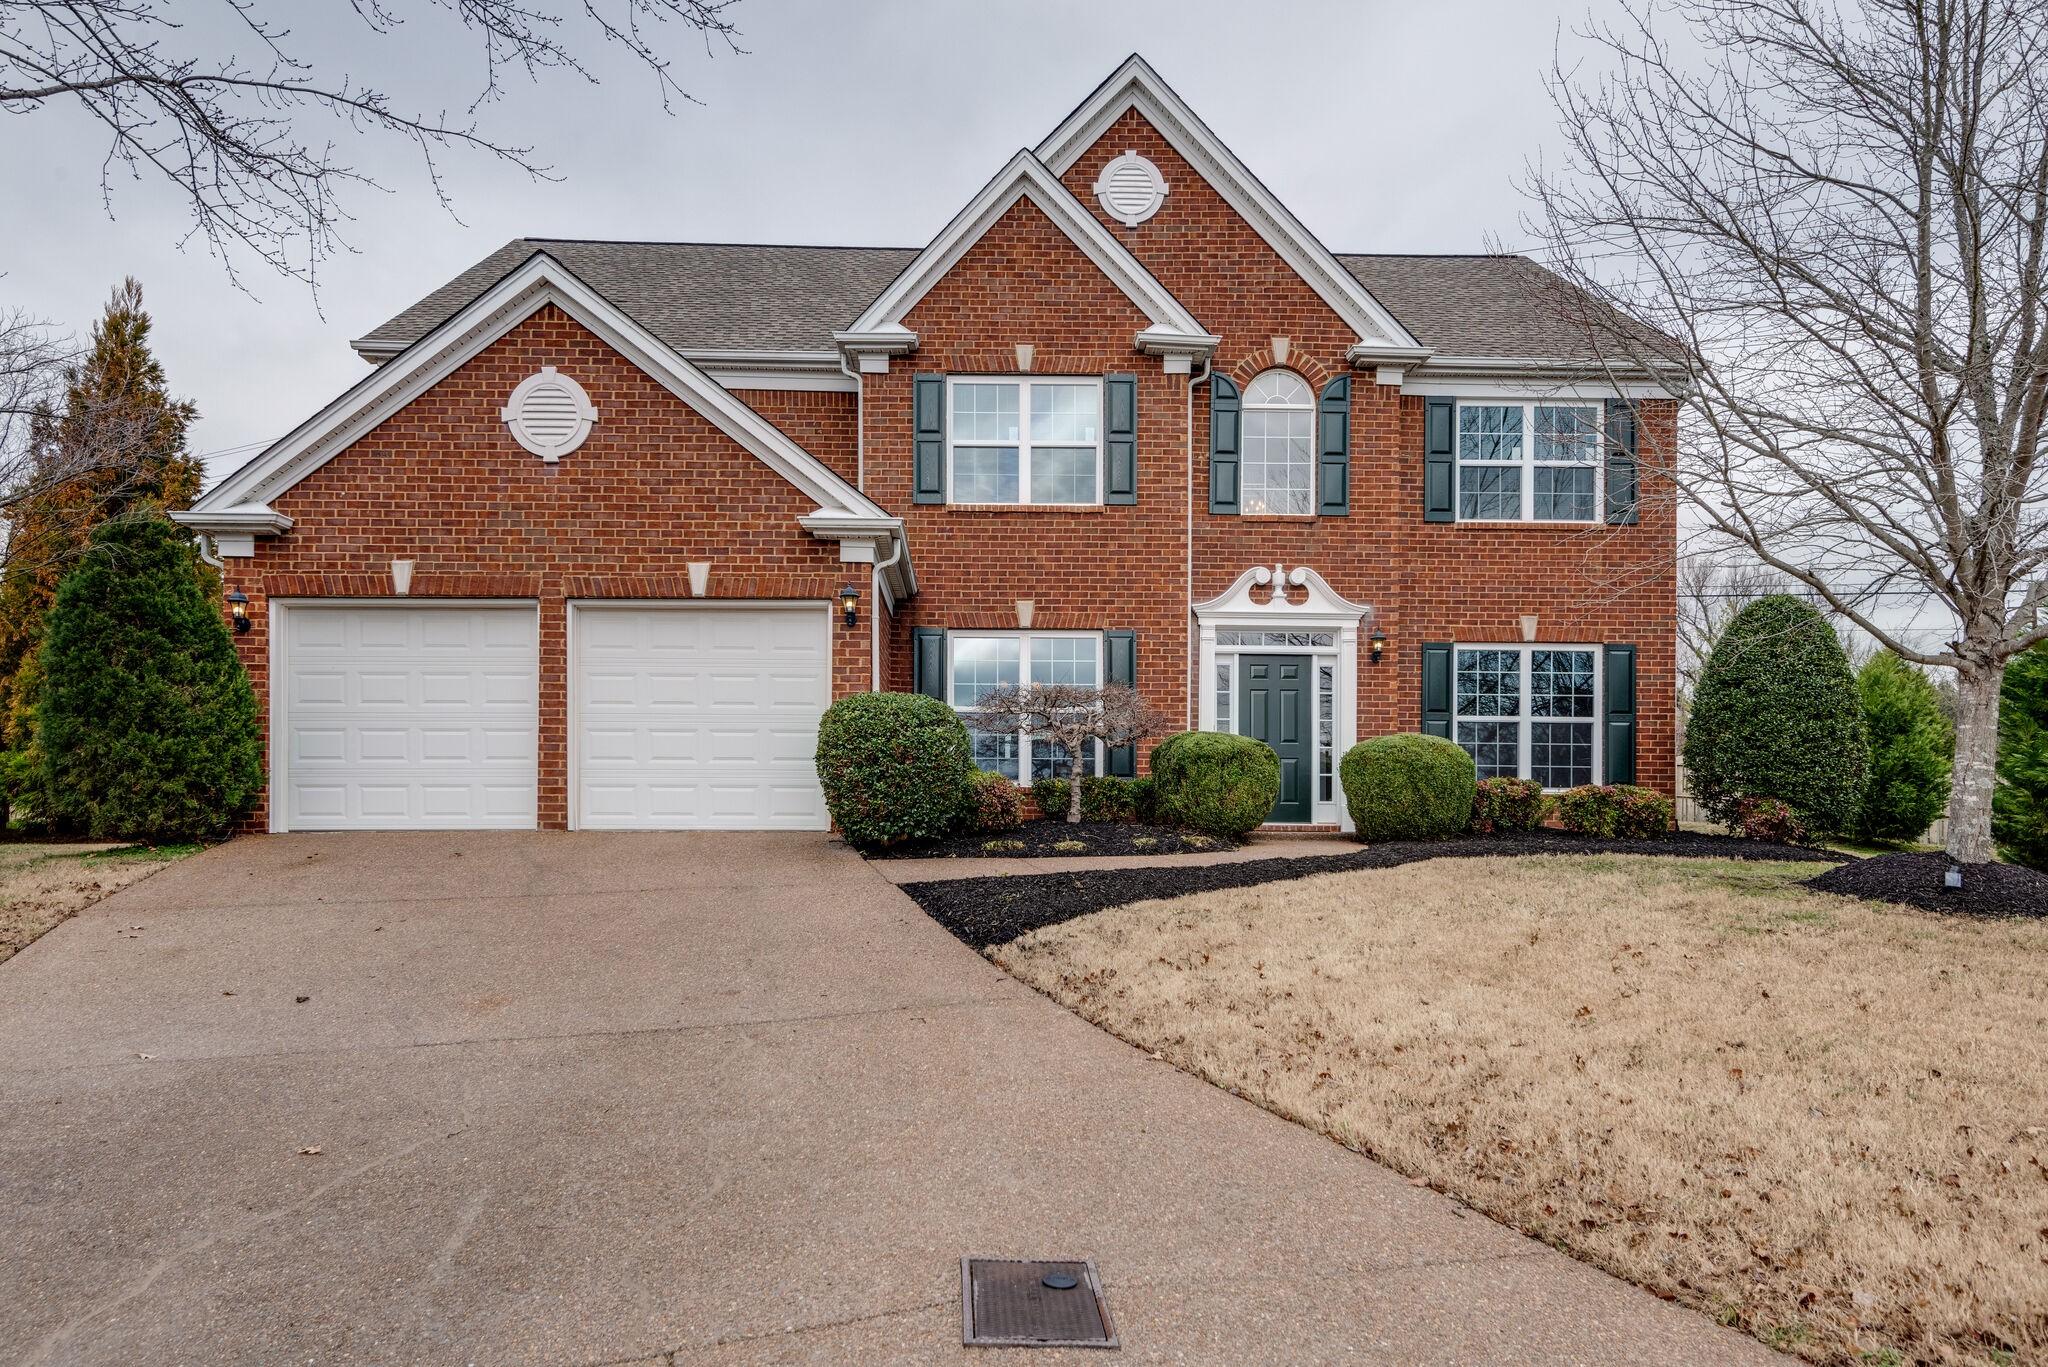 Beautiful Brentwood brick home in Williams Grove just minutes from downtown Nashville, Cool Springs shopping, and the airport.  Formal living room and formal dining plus separate office with fireplace shared with great room.  Lots of granite in the kitchen with stainless steel appliances and walk in pantry.    Oversized Master closet.  New hardwood upstairs and down and you'll love the private patio and landscaped yard.